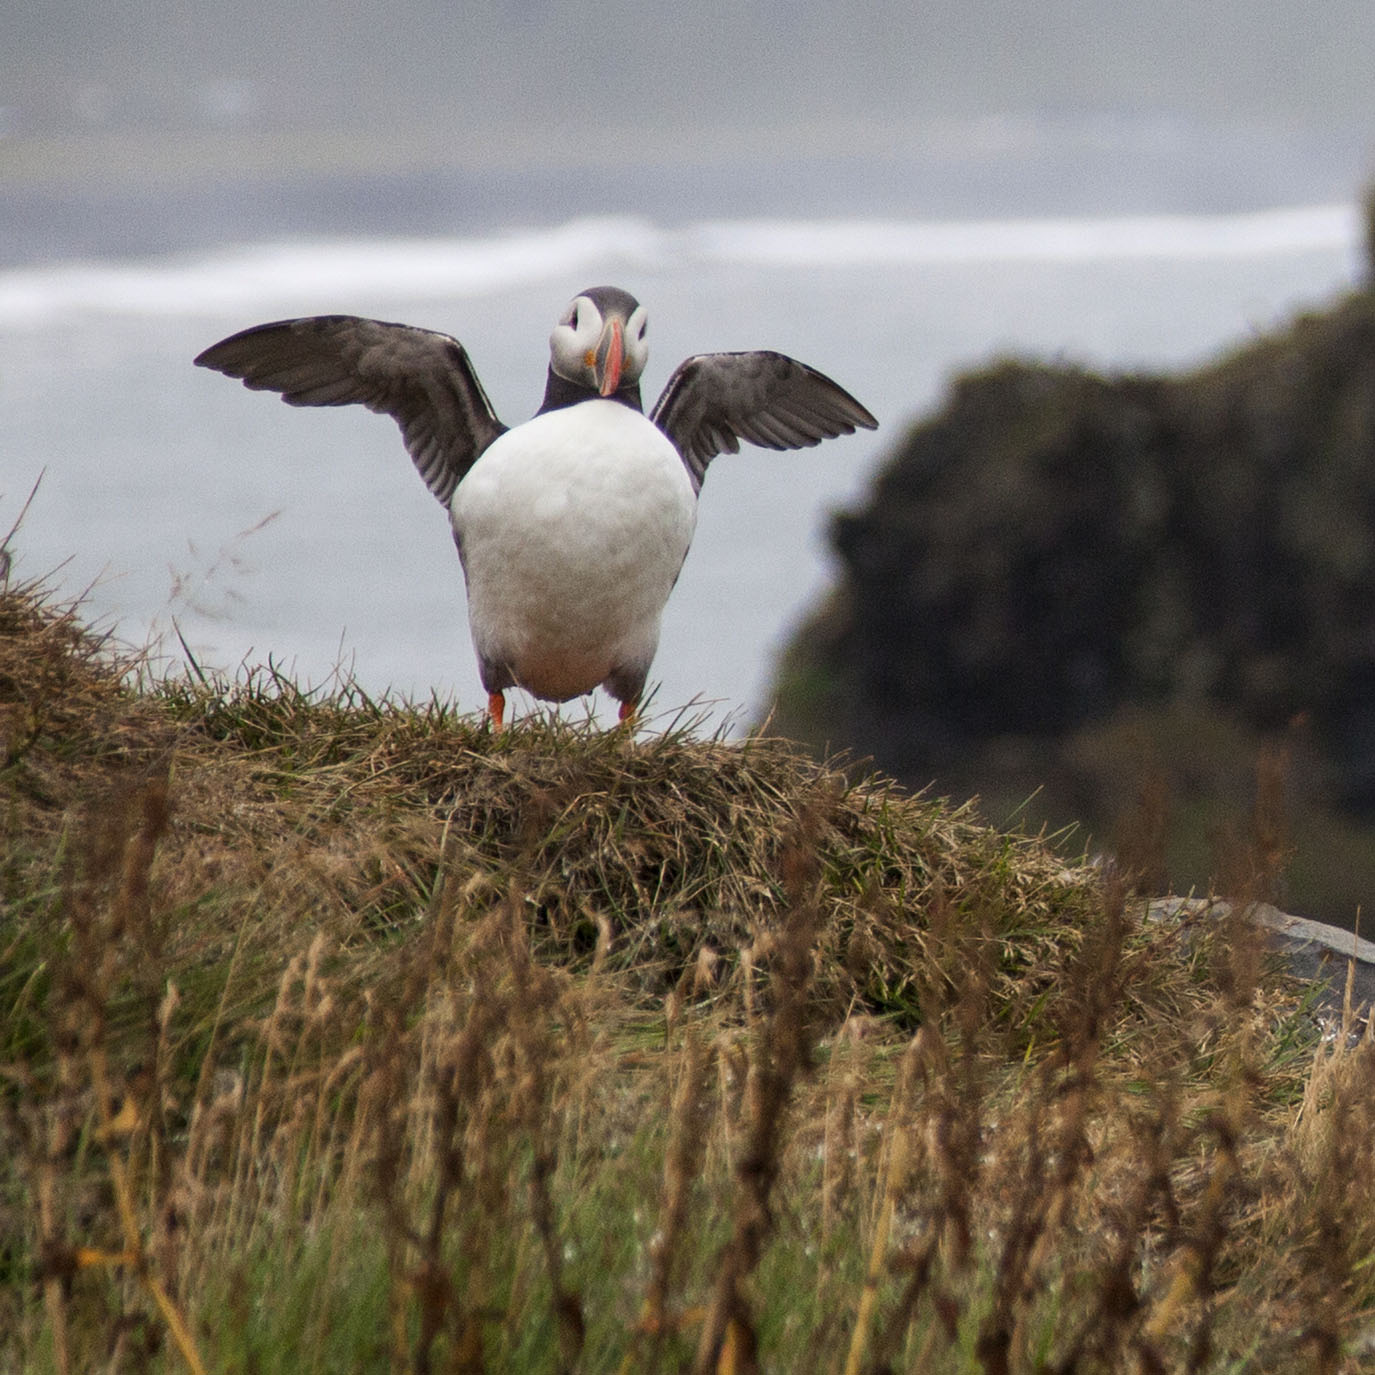 Puffins spend the fall and winter out in the open ocean living on fish.